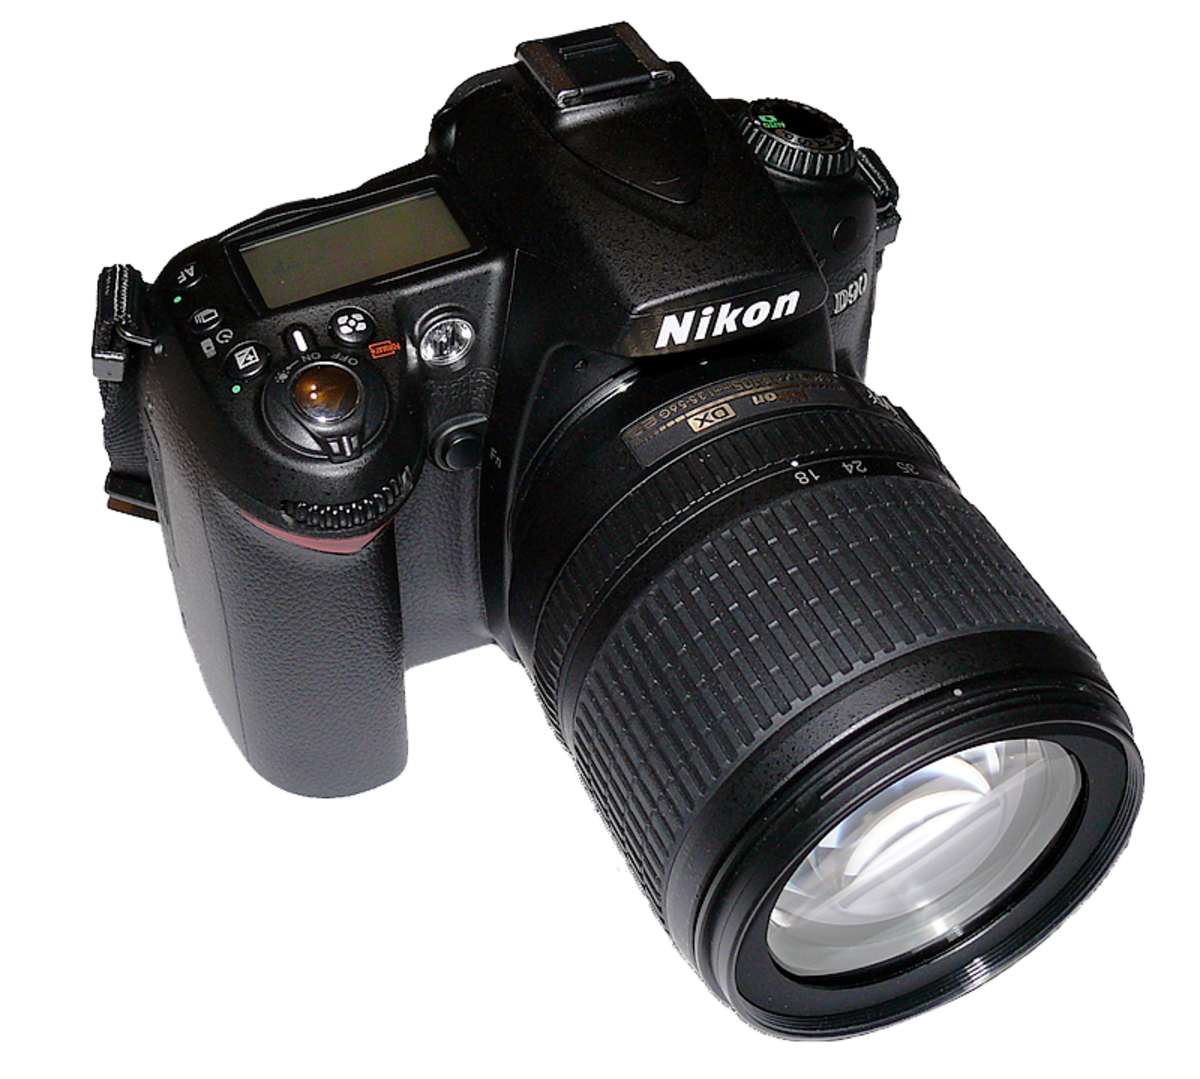 Digital SLR Camera: How To Get a Good DSLR Camera Cheap | HubPages